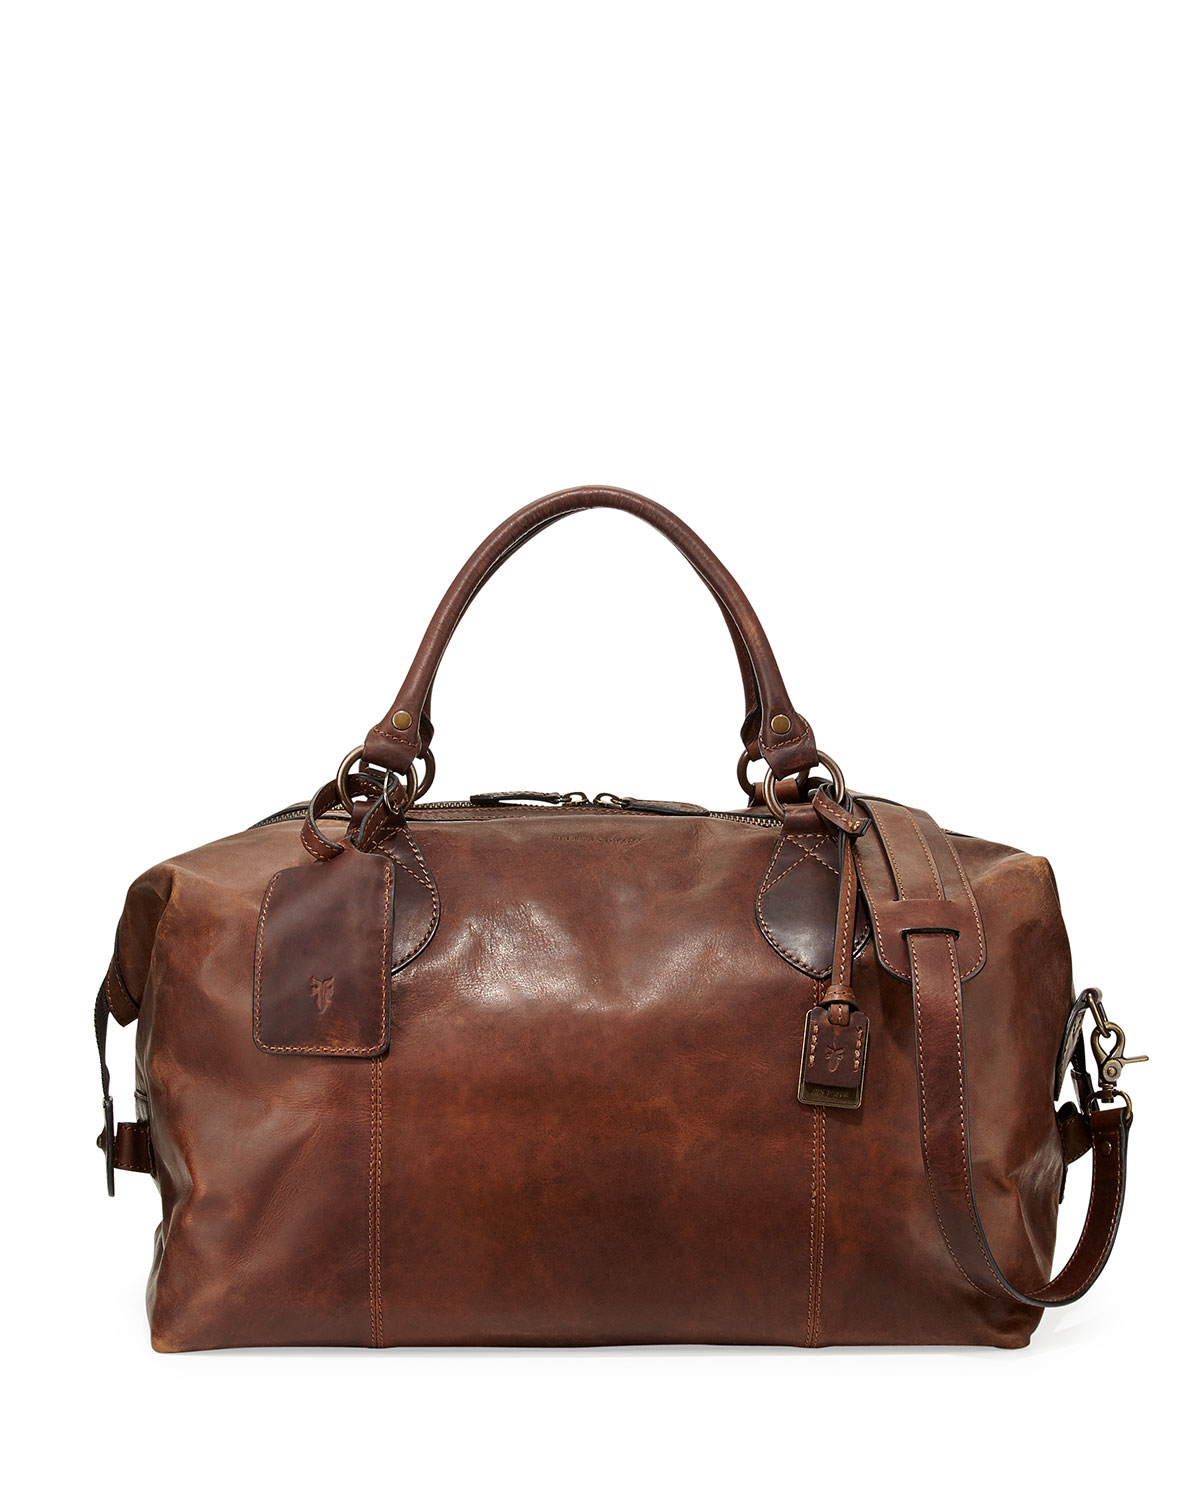 Leather Duffel Bags. Luggage & Bags / Bags / Duffel Bags. of Results. Sort by: Handmade Phive Rivers Men's Leather Travel Duffel Bag (Tan) (Italy) 1 Review. More Options. Quick View Alberto Bellucci Milano Italian Leather Carry-on Overnight Getaway Duffel Bag. SALE.